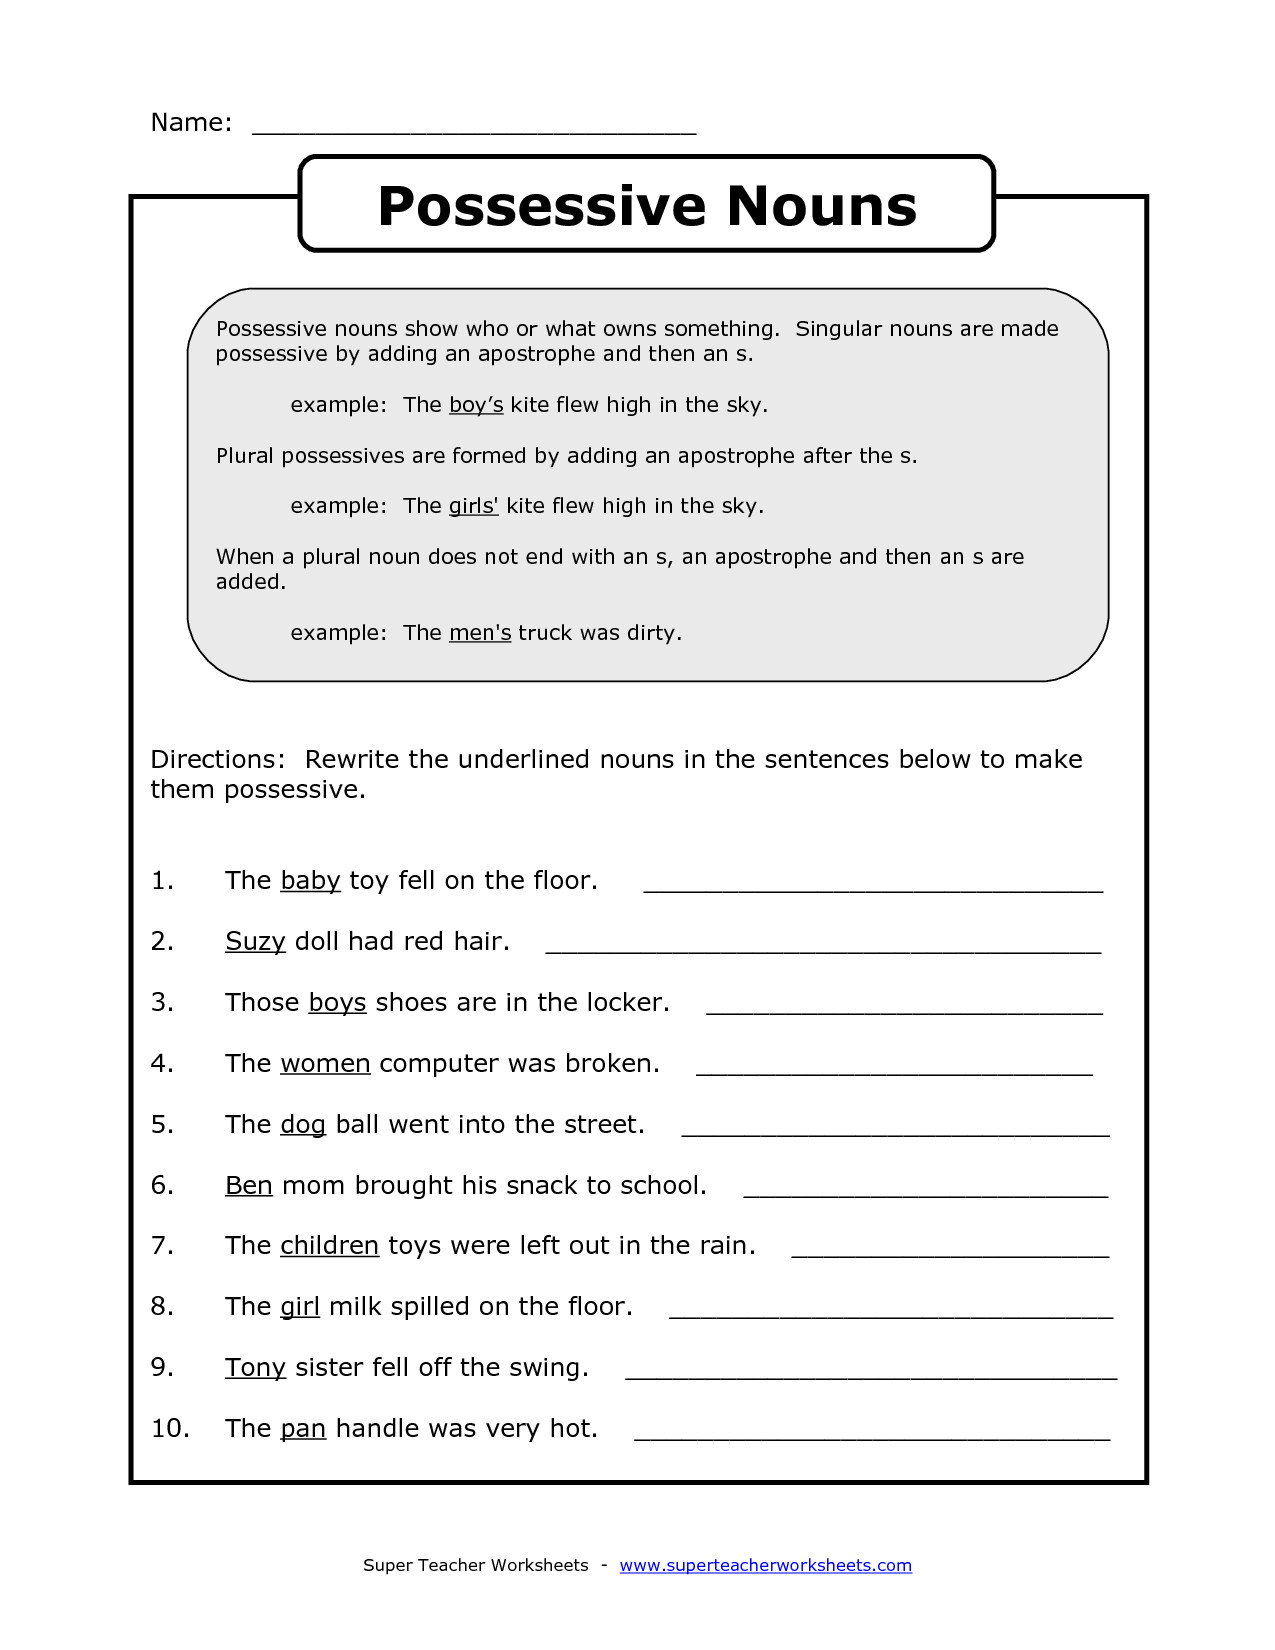 Possessive Noun Worksheet 2nd Grade Possessive Nouns Worksheets Elementary